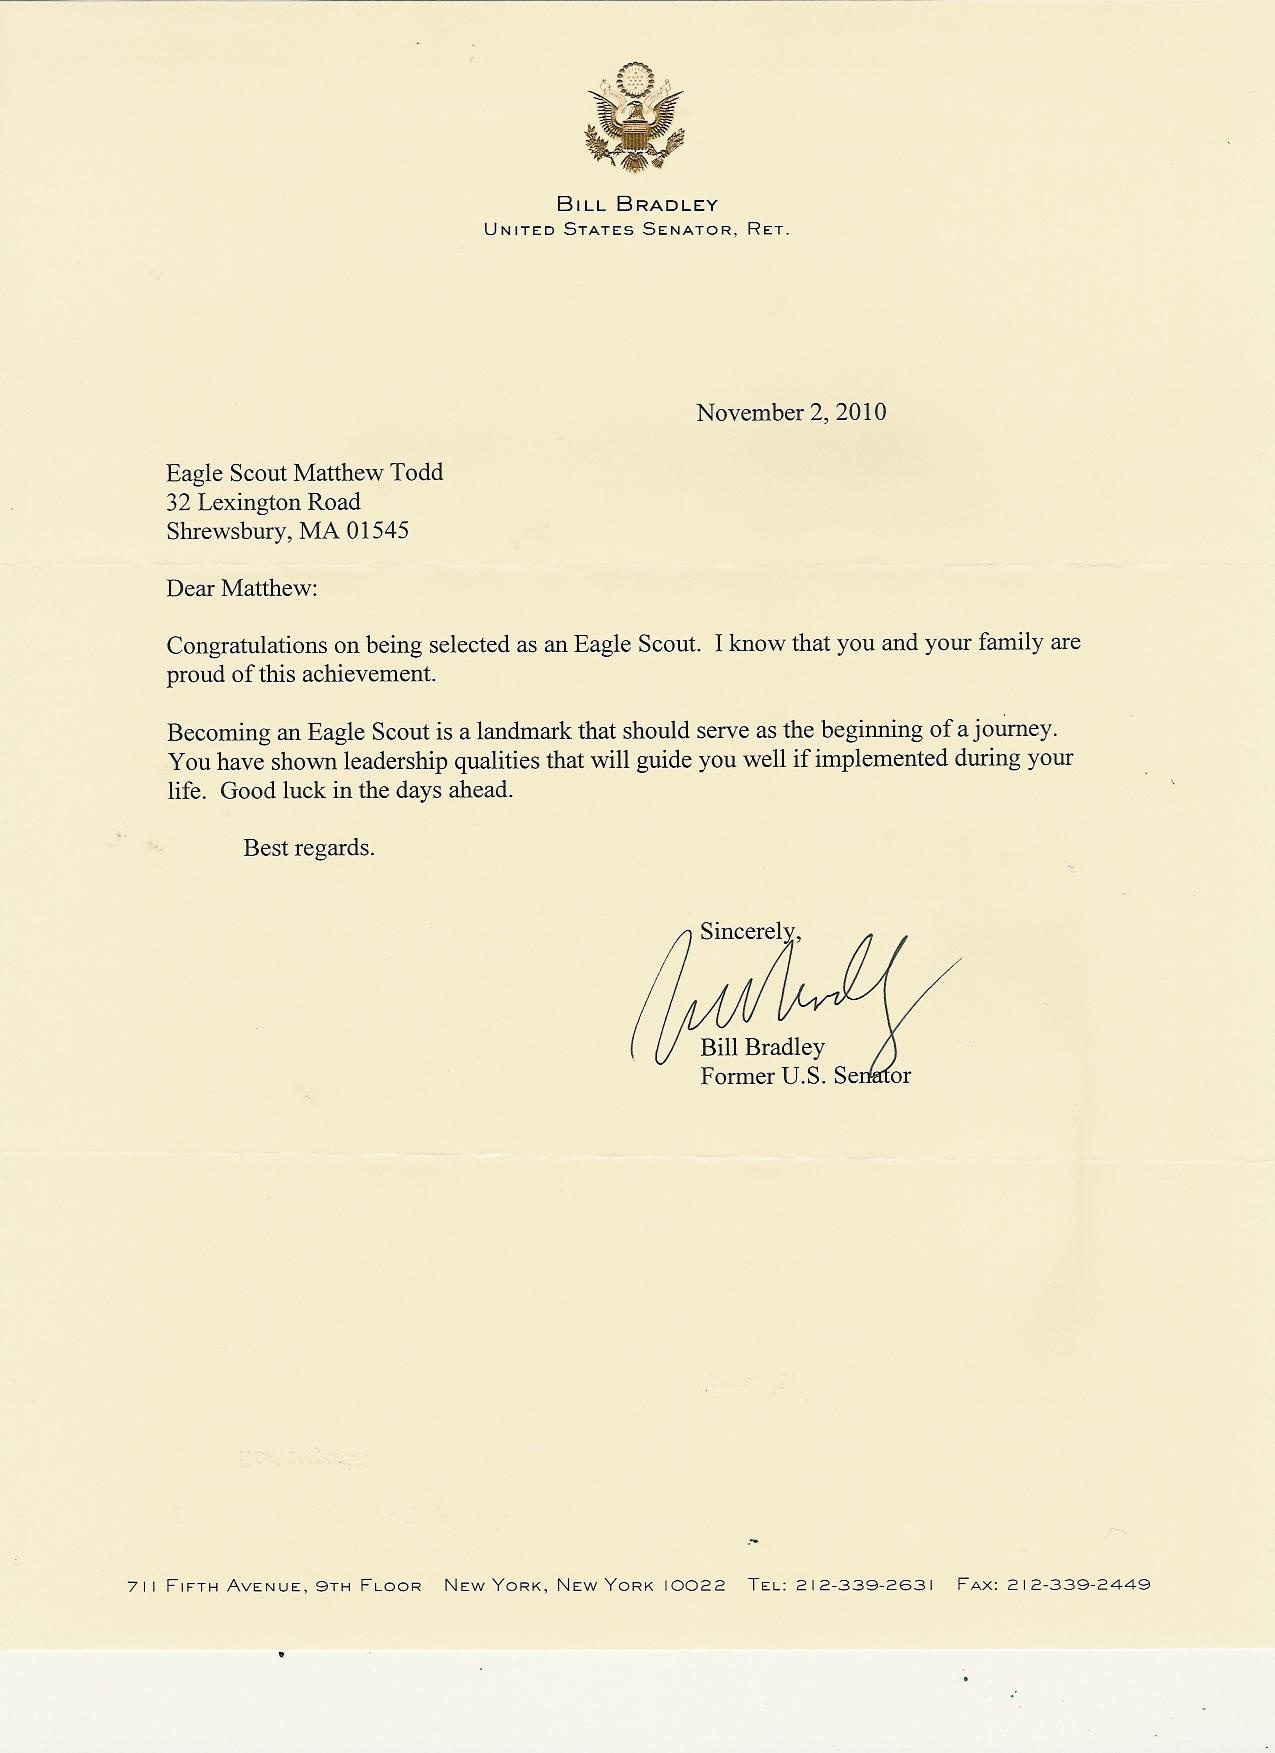 Information playground matthews eagle application and commendations a letter from former thecheapjerseys Images